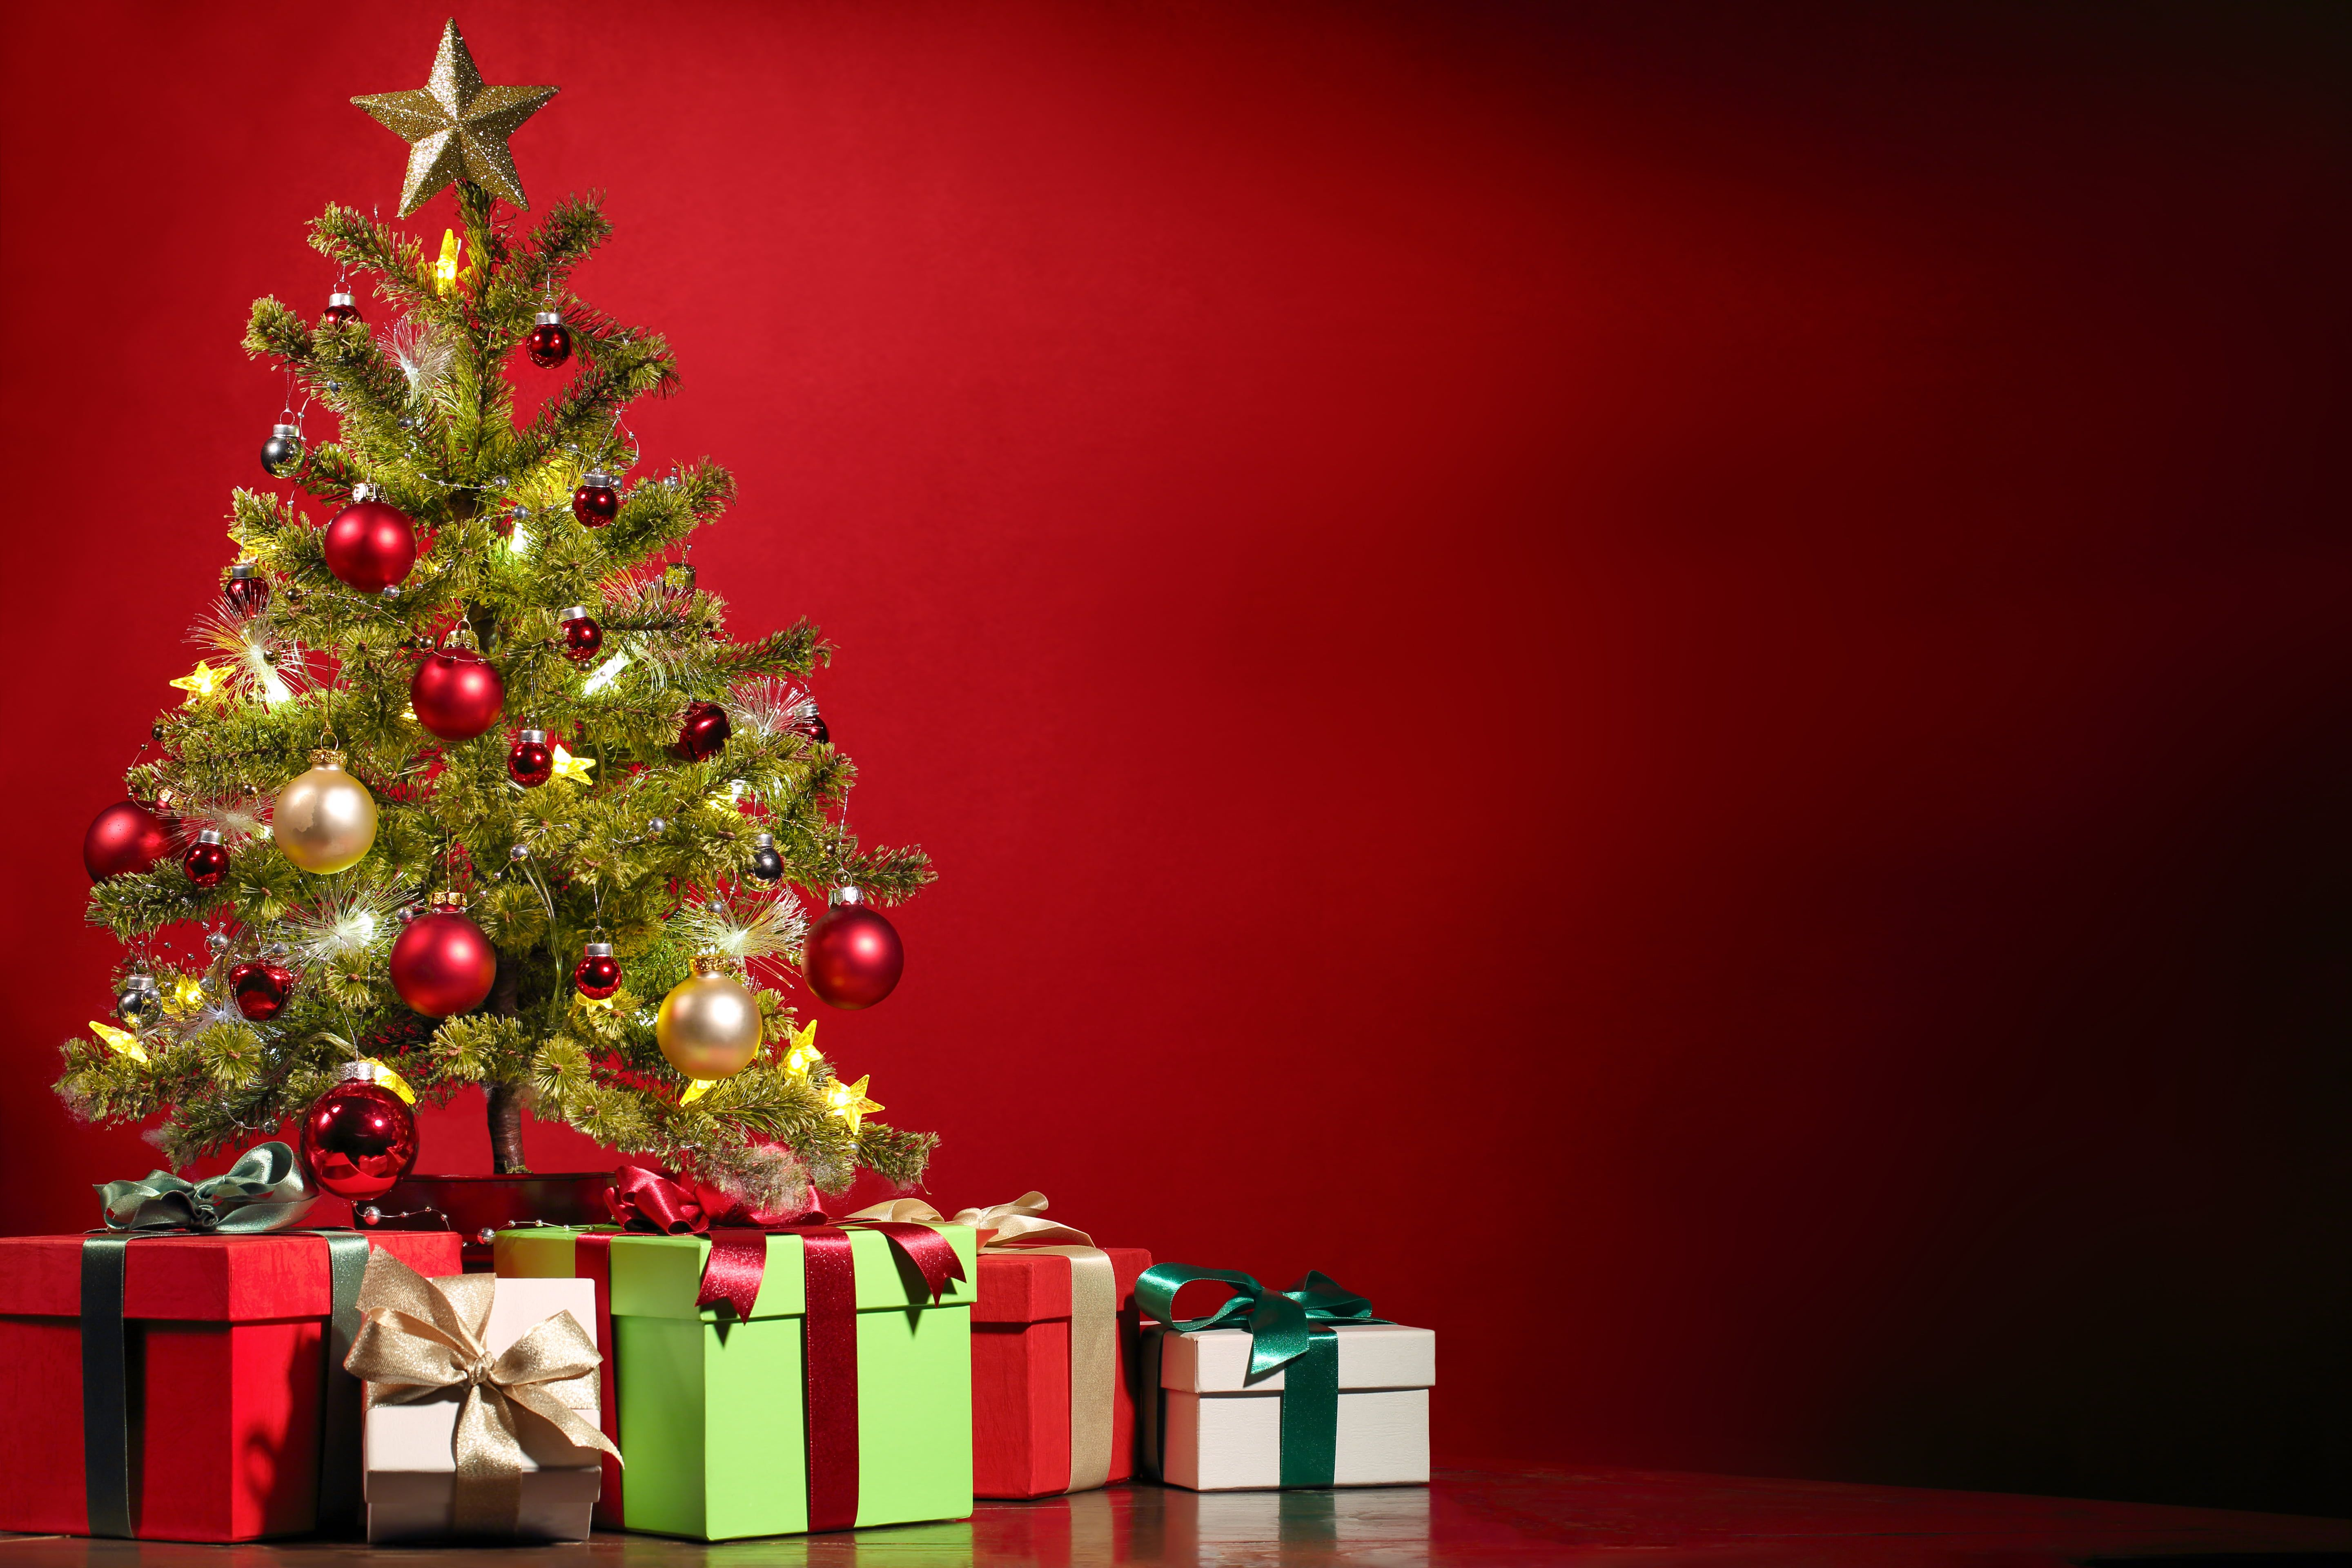 Green Christmas Tree And Assorted Color Gift Boxes Stars Tree Gifts New Year Christmas Tree Images Christmas Tree Wallpaper Christmas Photography Backdrops Hd wallpaper christmas tree gifts boxes